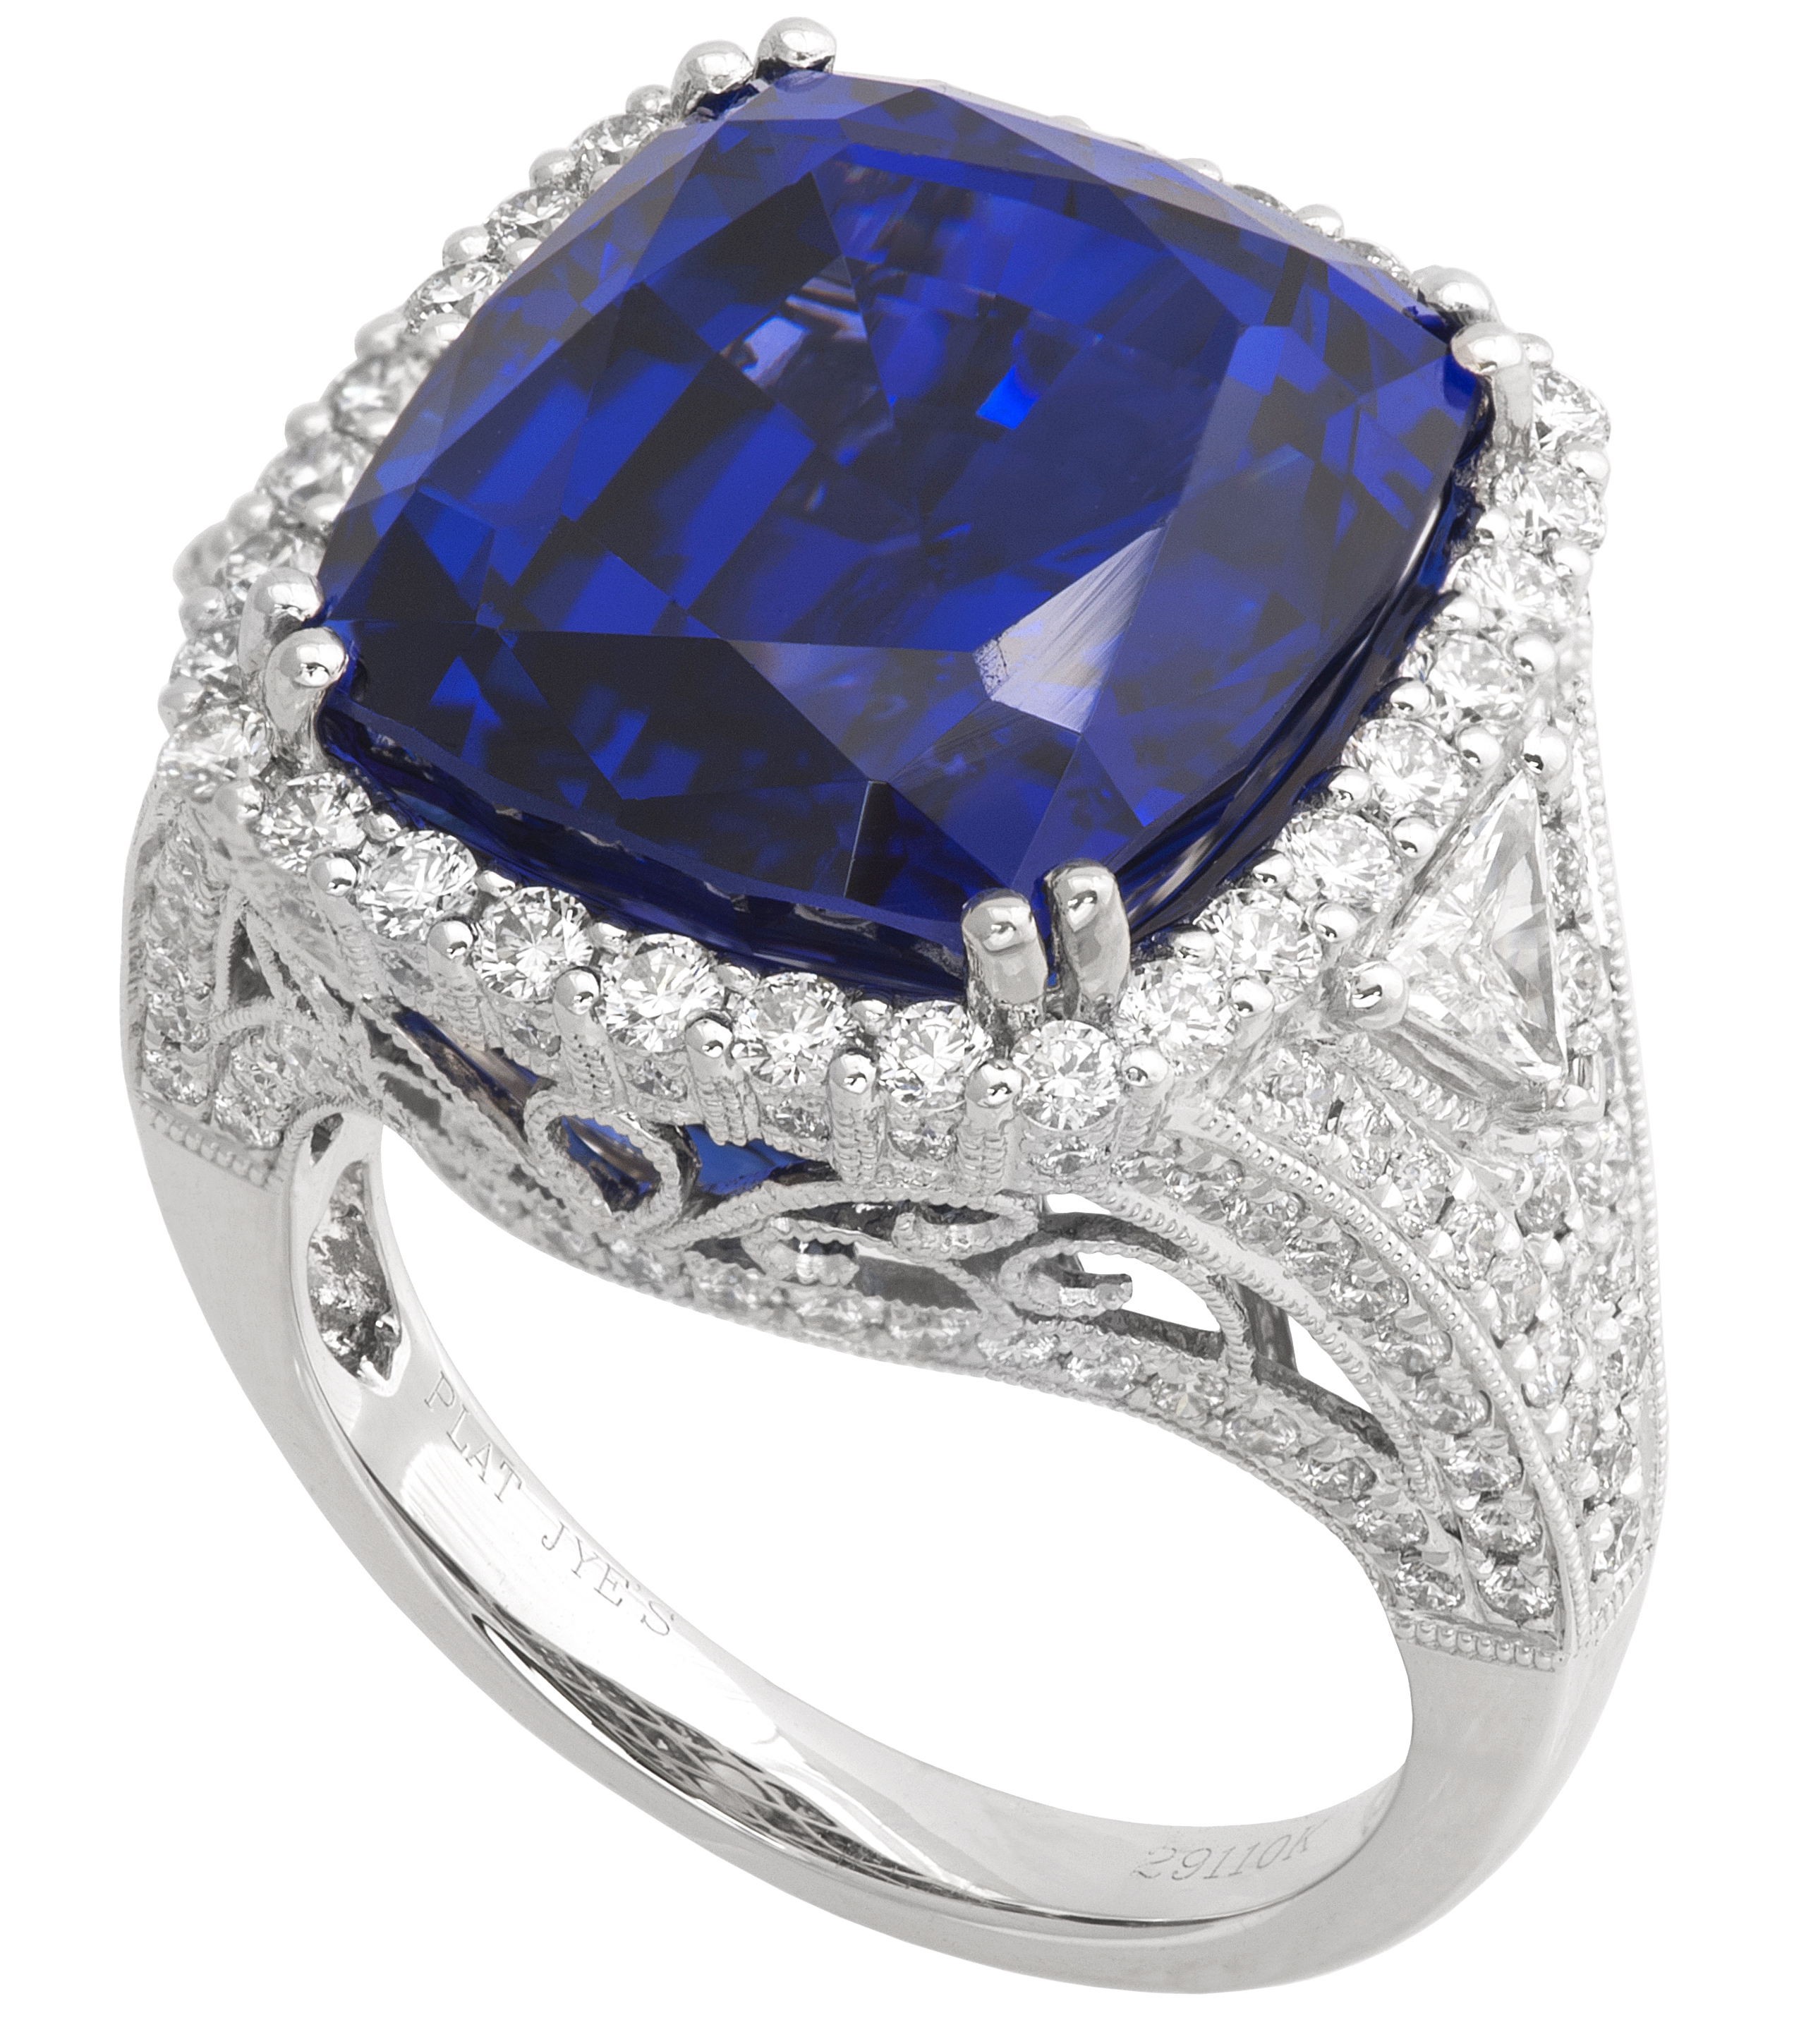 Jye Luxury Collection tanzanite cocktail ring | JCK On Your Market